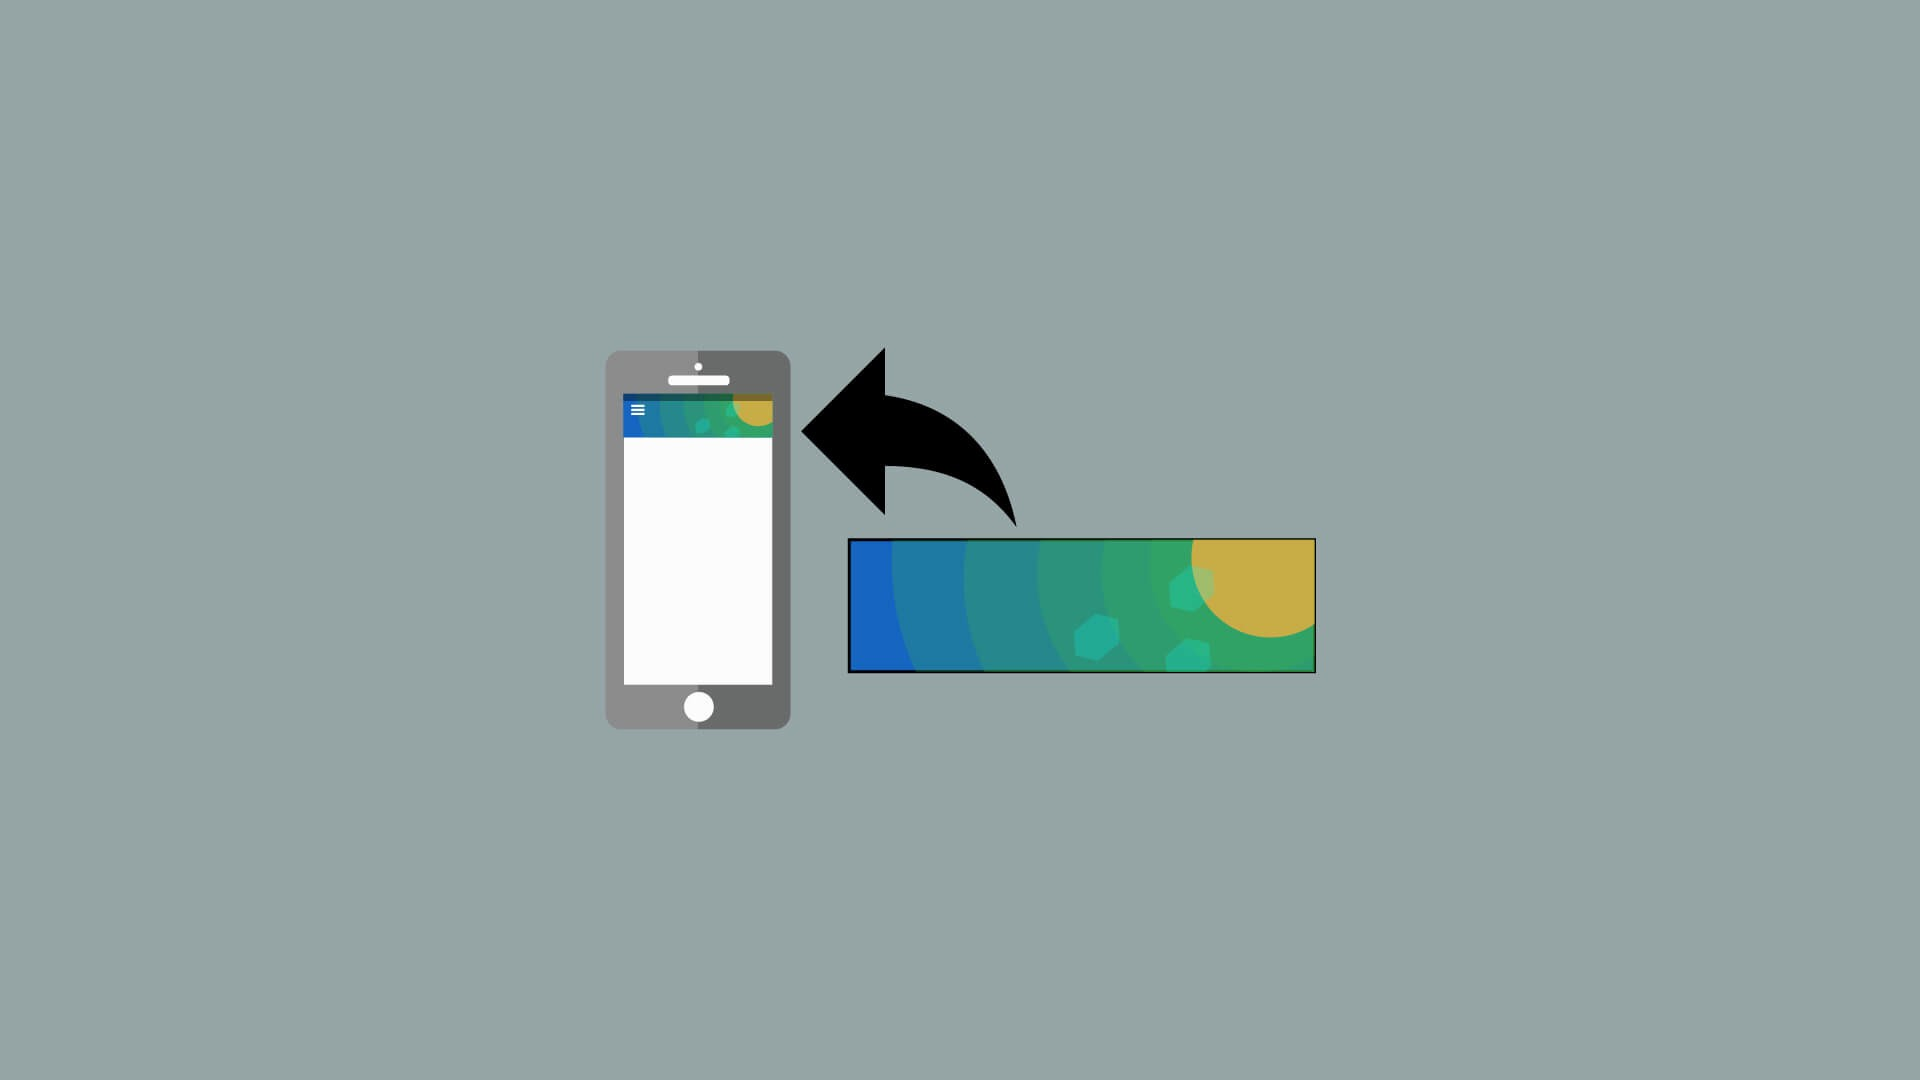 Adding A Background Image To An Android Toolbar In The Right Way